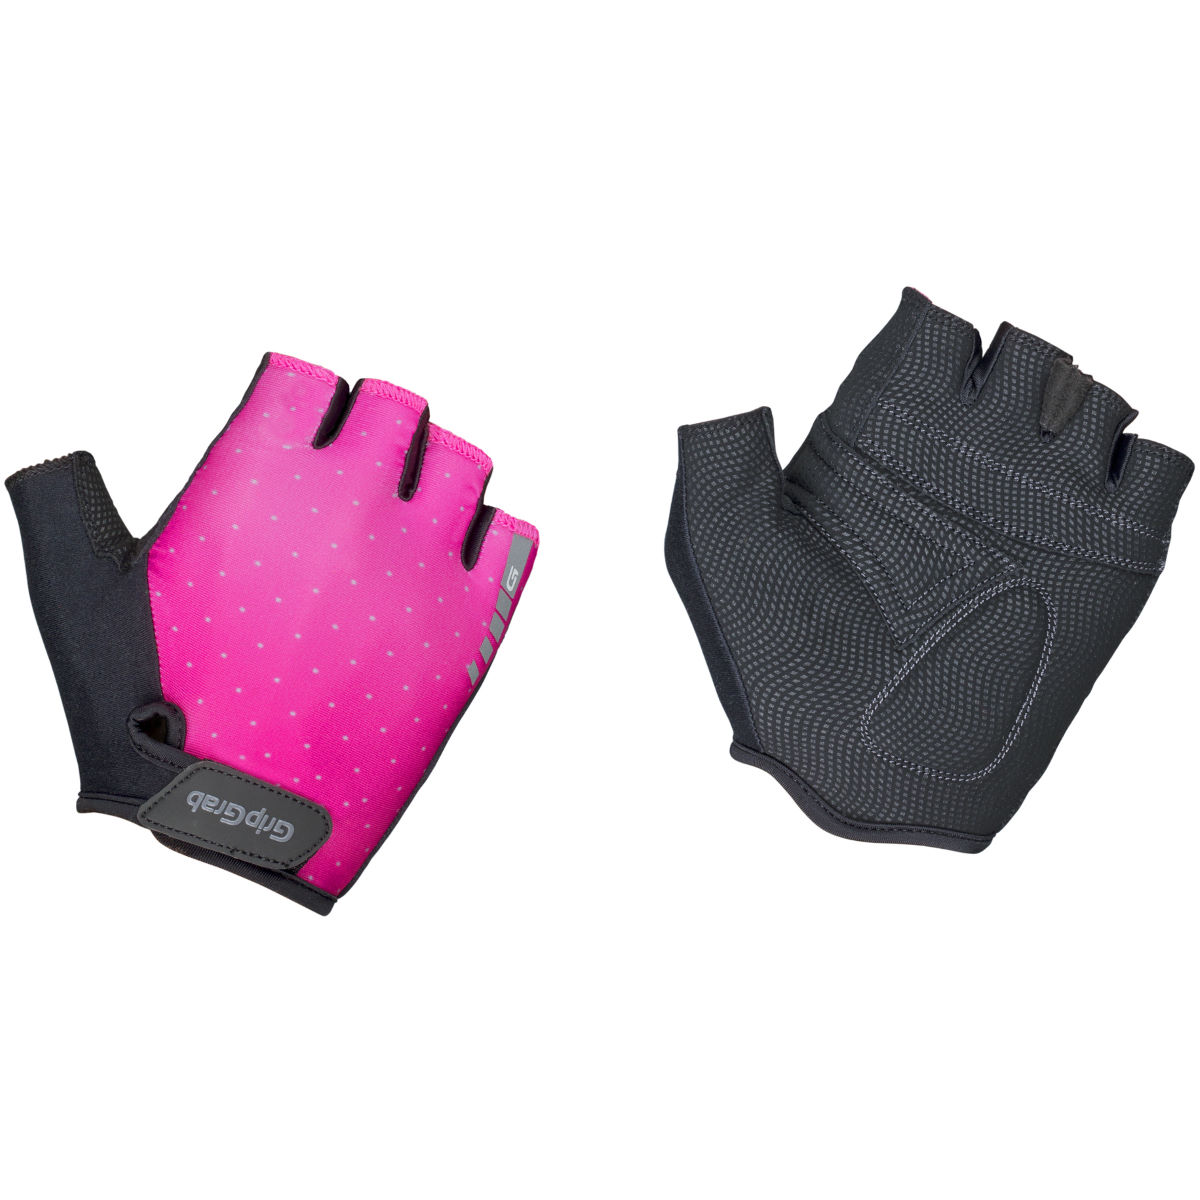 Gripgrab Womens Rouleur Gloves - Xs Pink  Gloves